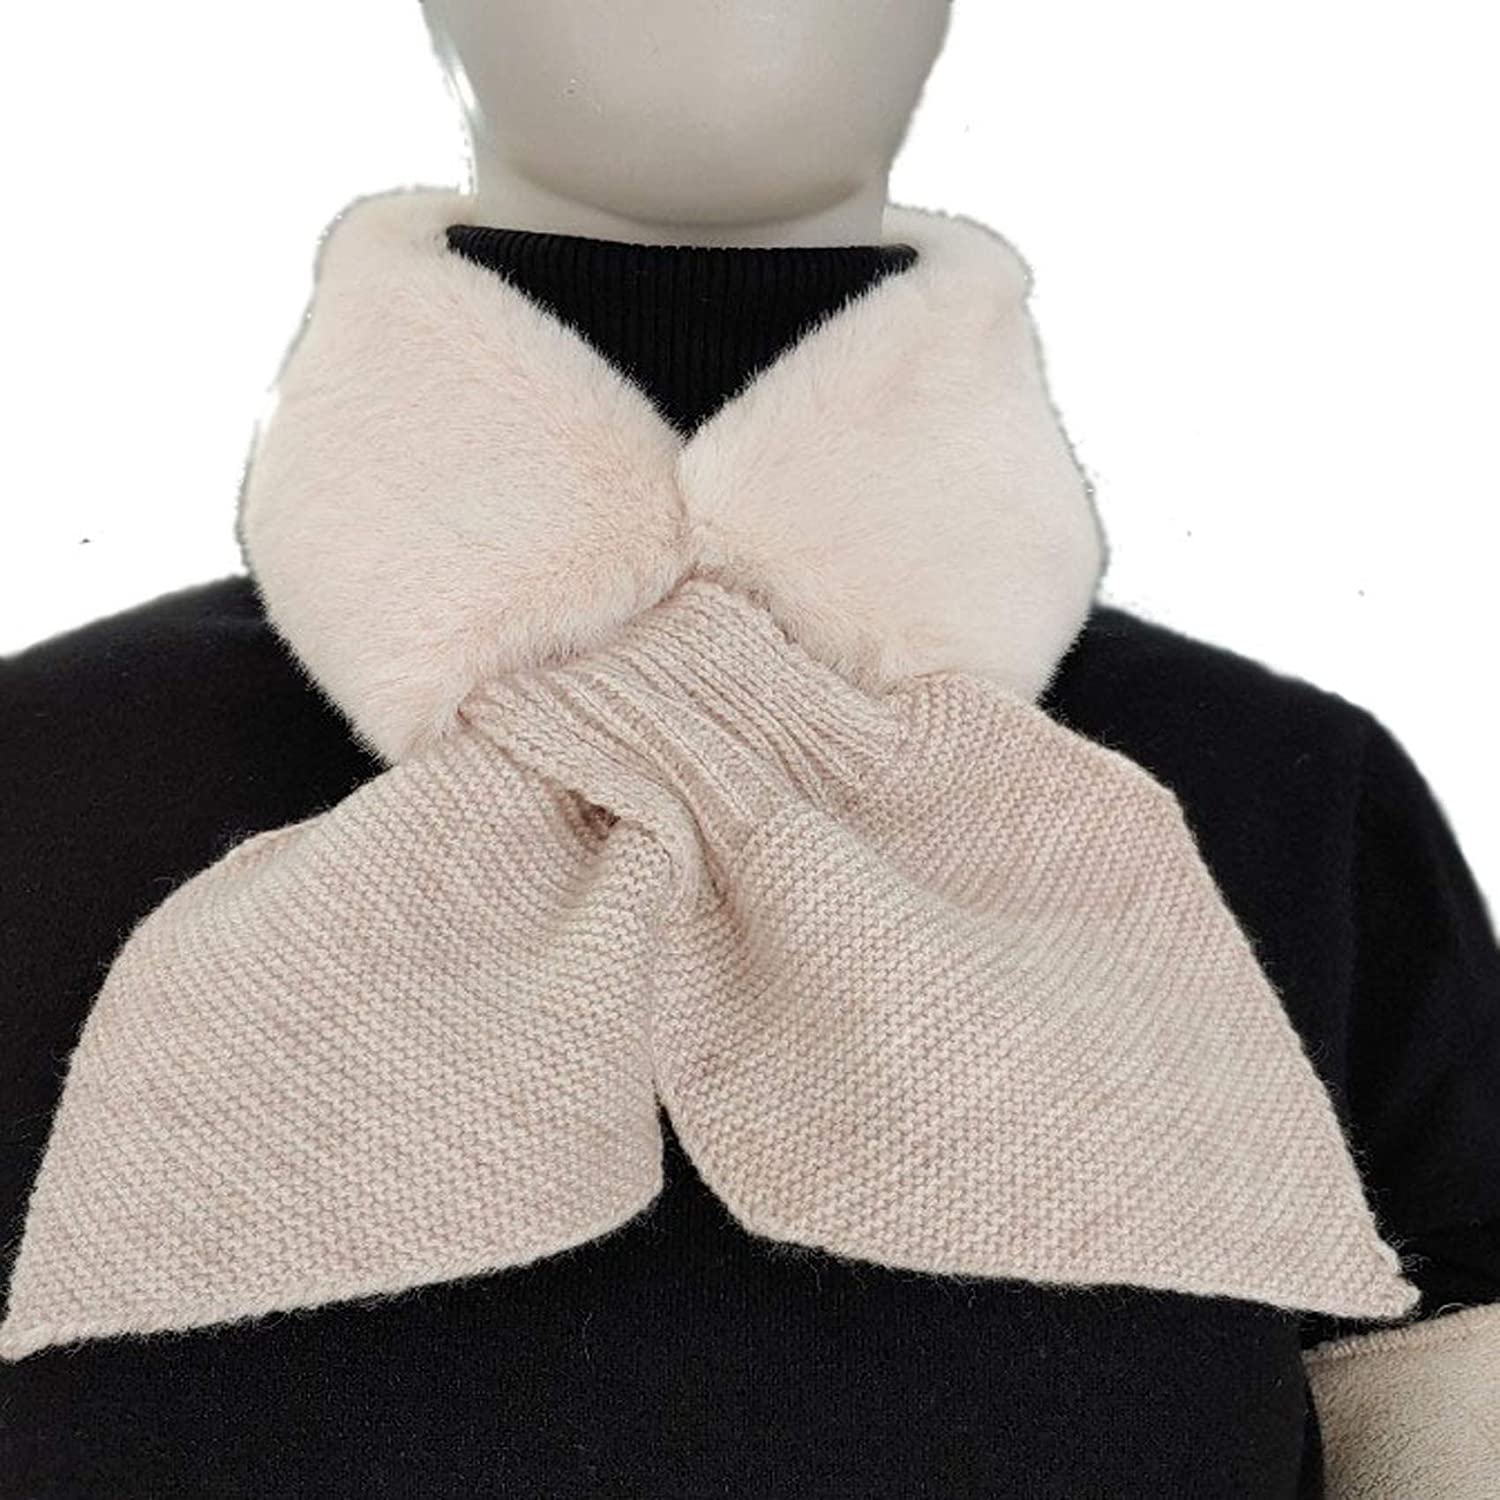 FURSURE Faux Fur Collar Scarf Knitted Neck Shrug for Fall Winter